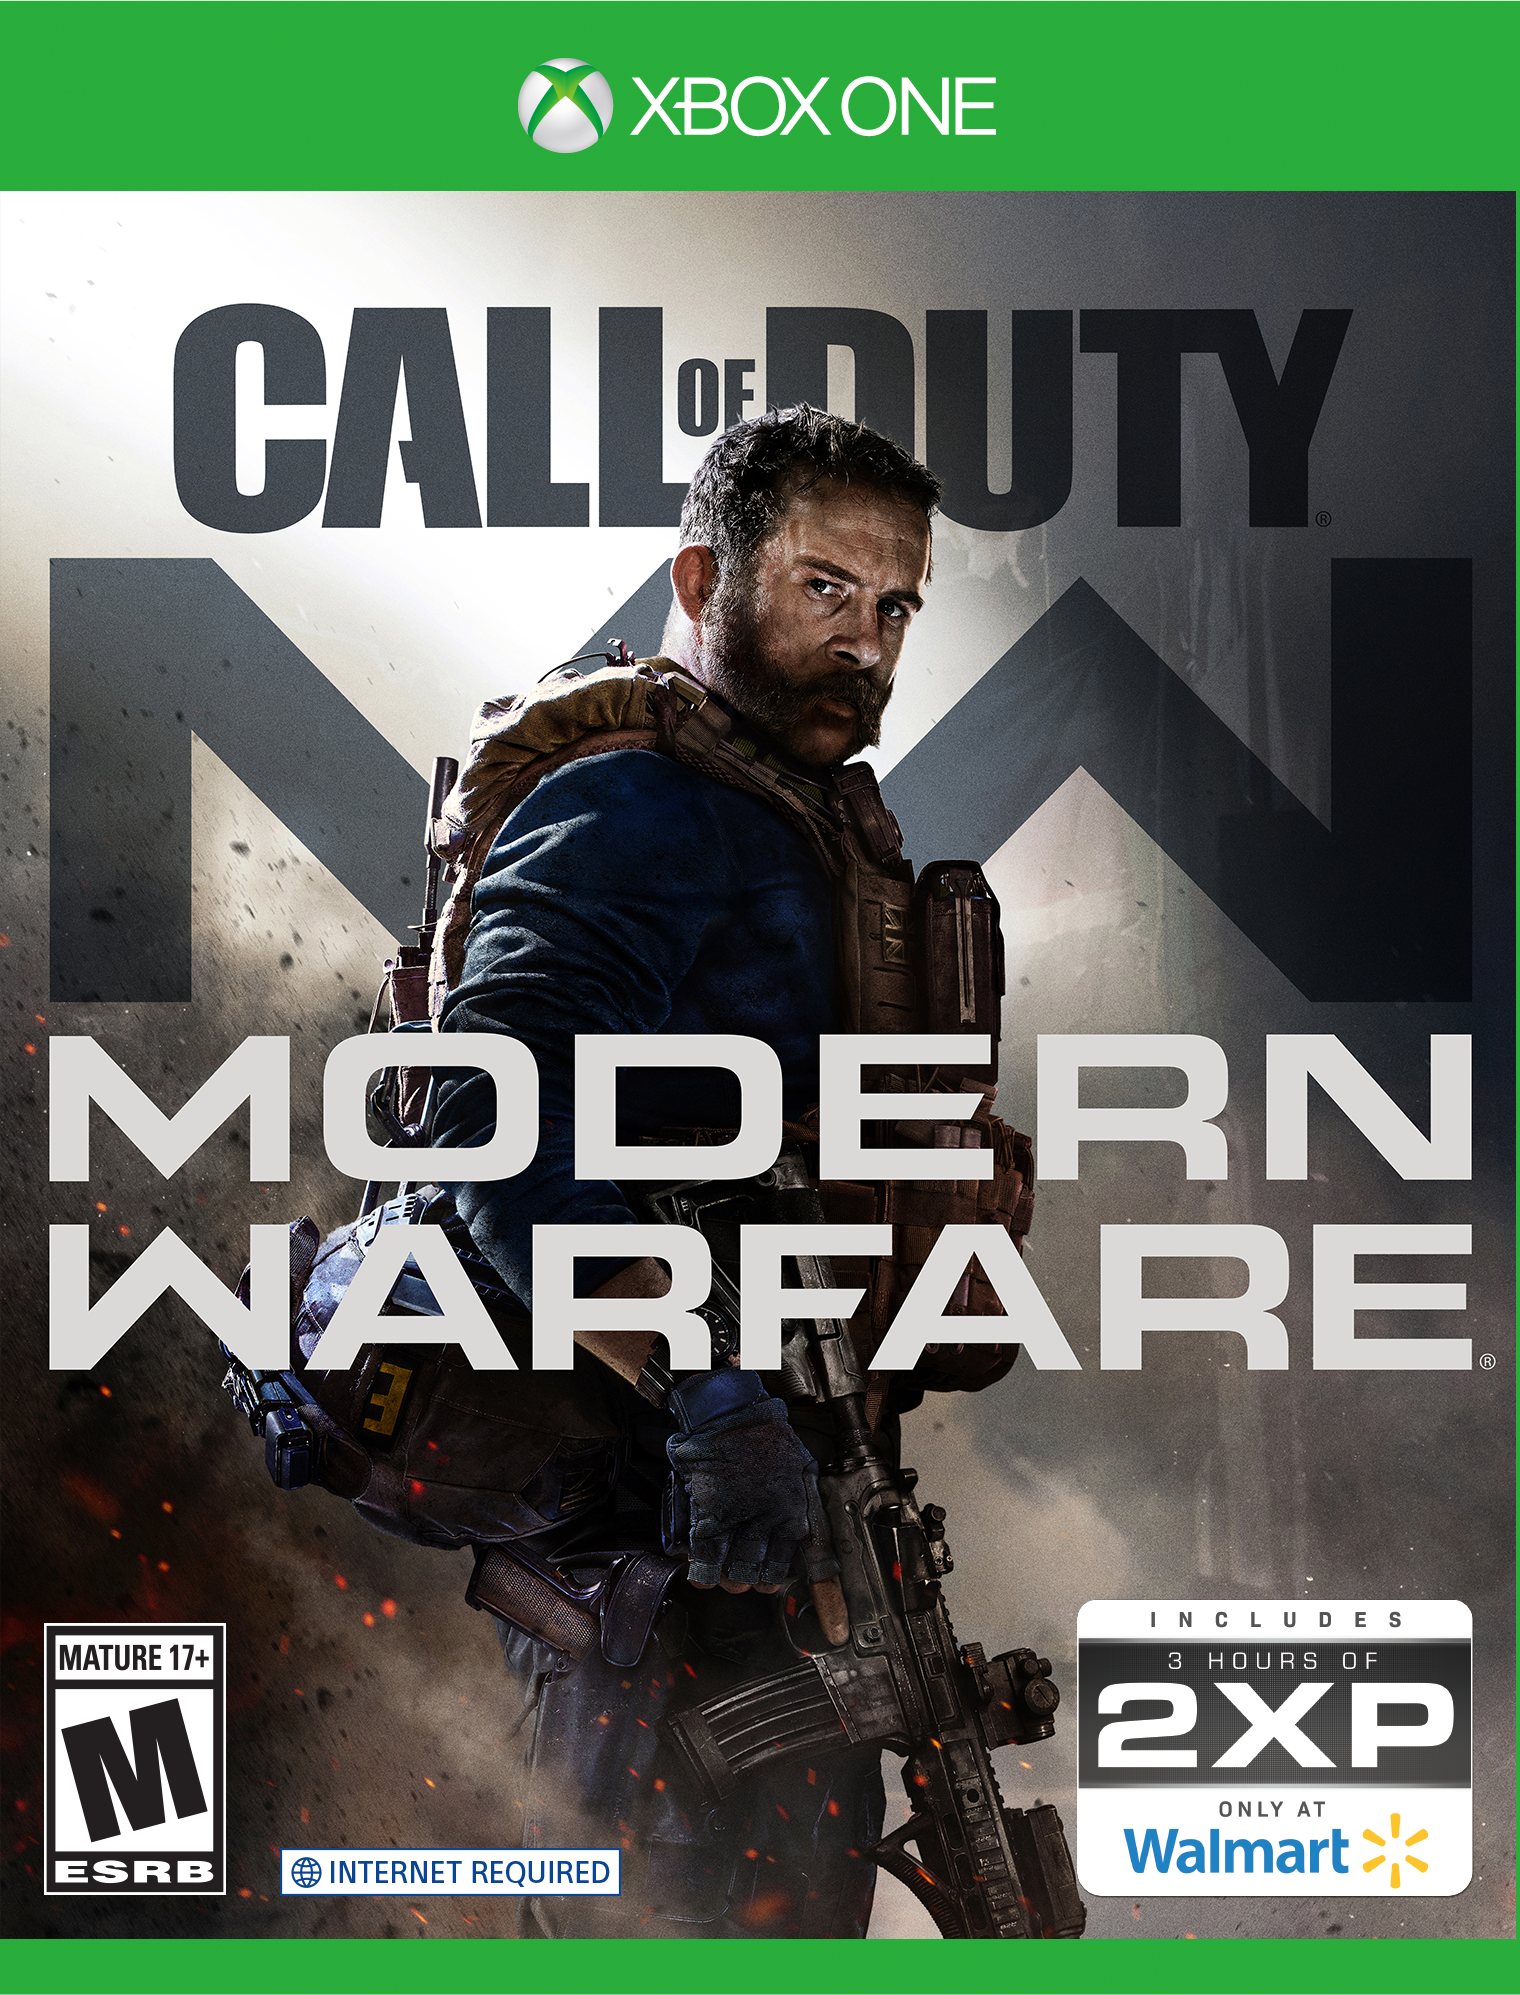 Seasonal With Images Modern Warfare Call Of Duty Activision